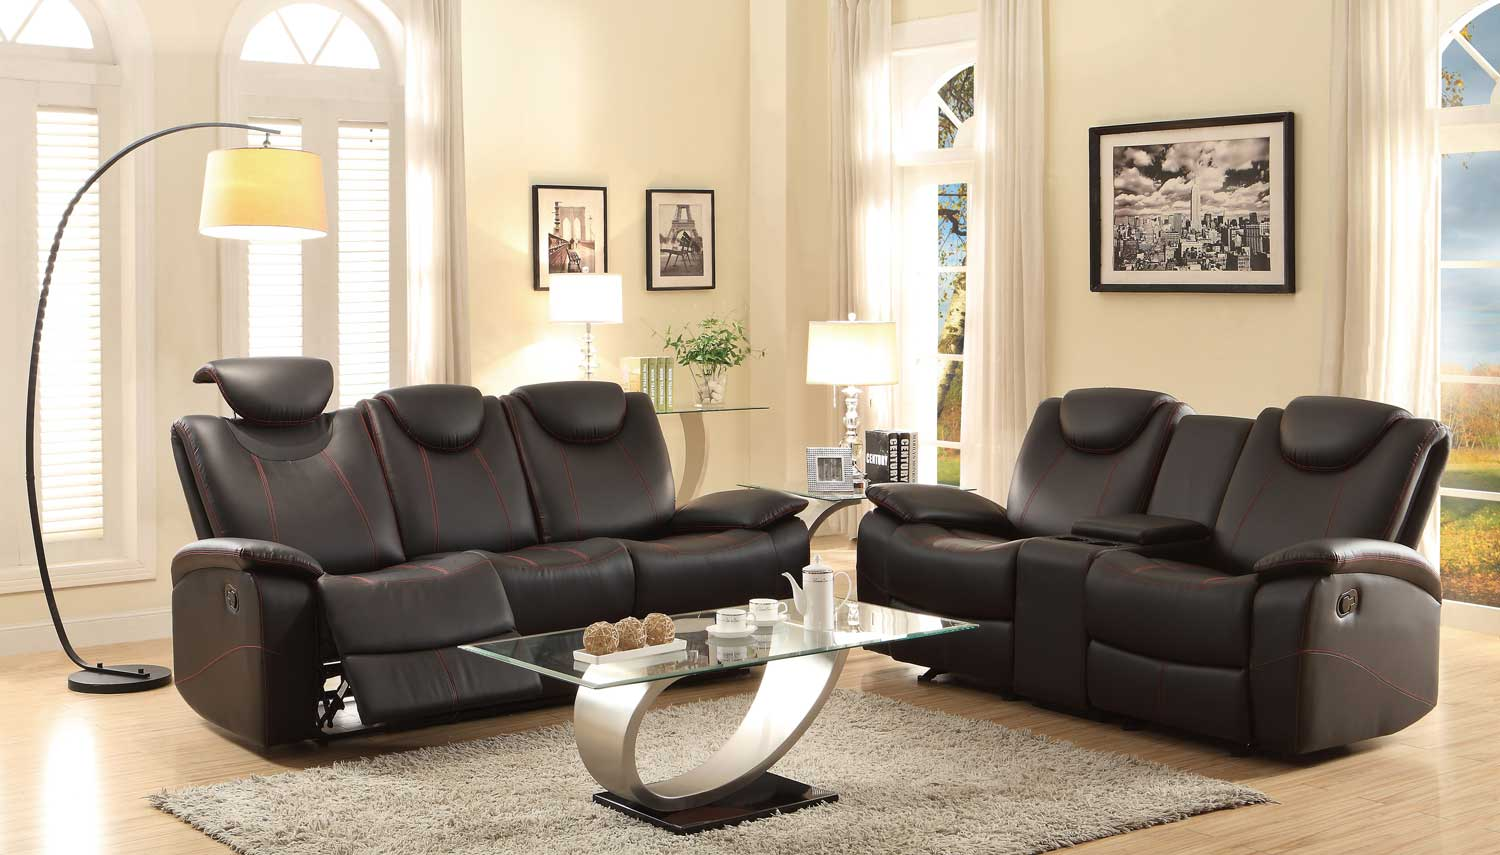 Homelegance Talbot Reclining Sofa Set - Black Bonded Leather